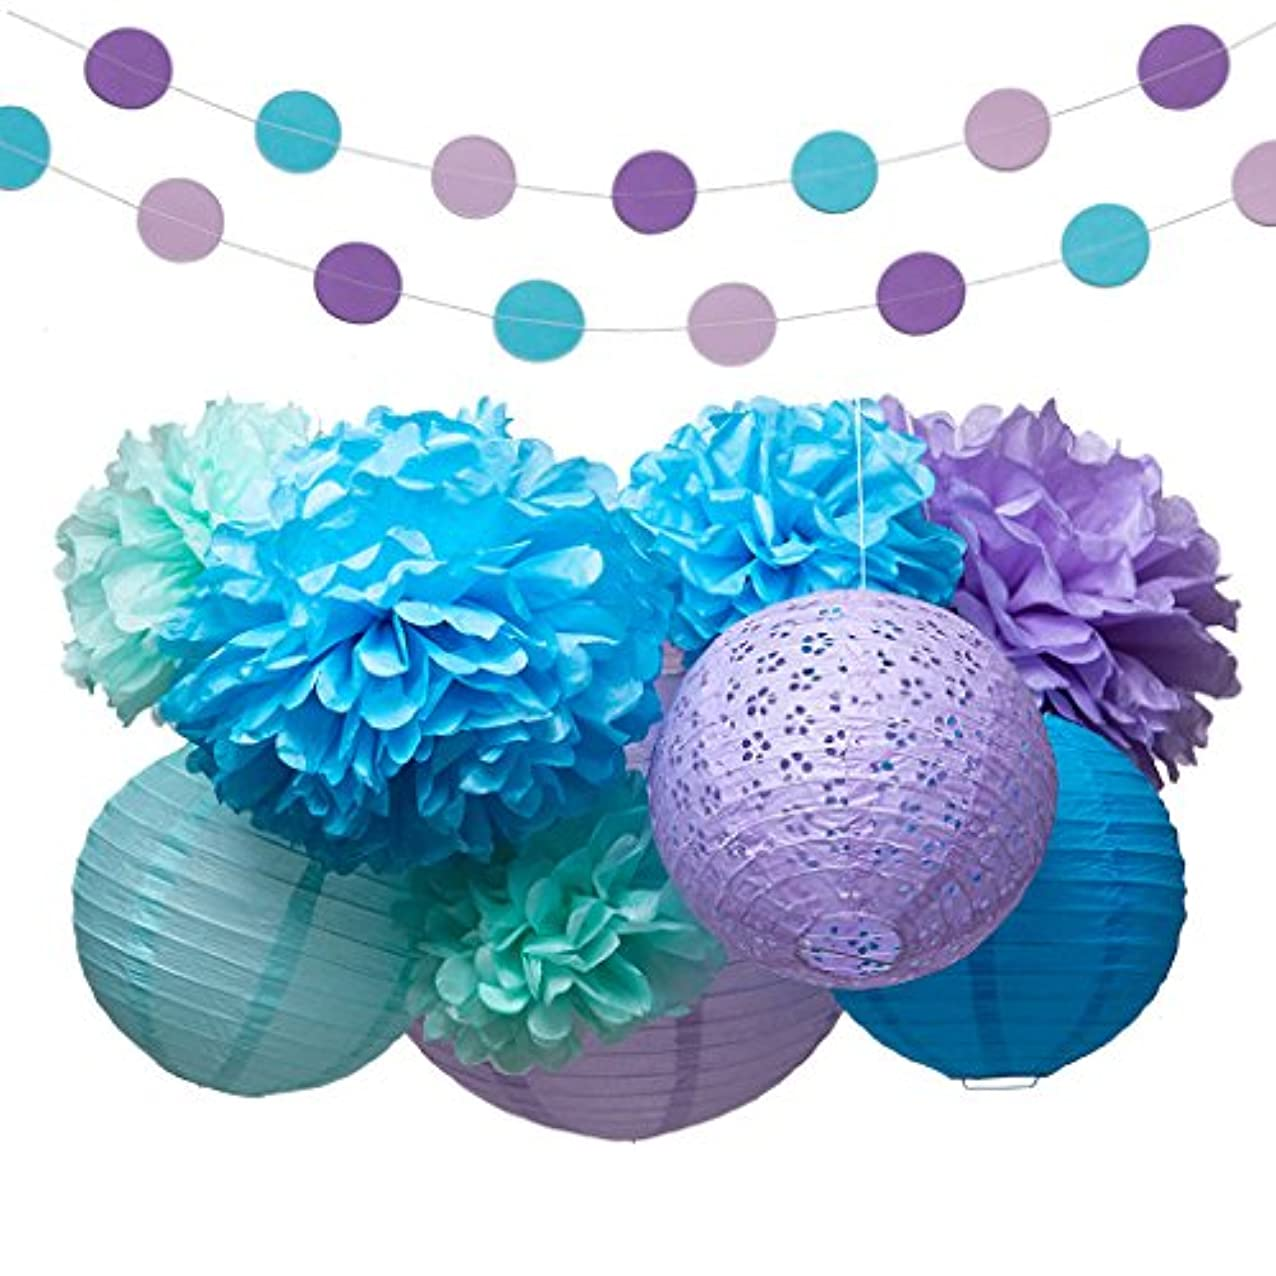 Mermaid Under The Sea Party Supplies Decorations Tissue Paper Pom Poms Lantern Garland Kit for Baby Shower Bridal Shower 16 zosltgknubznf079